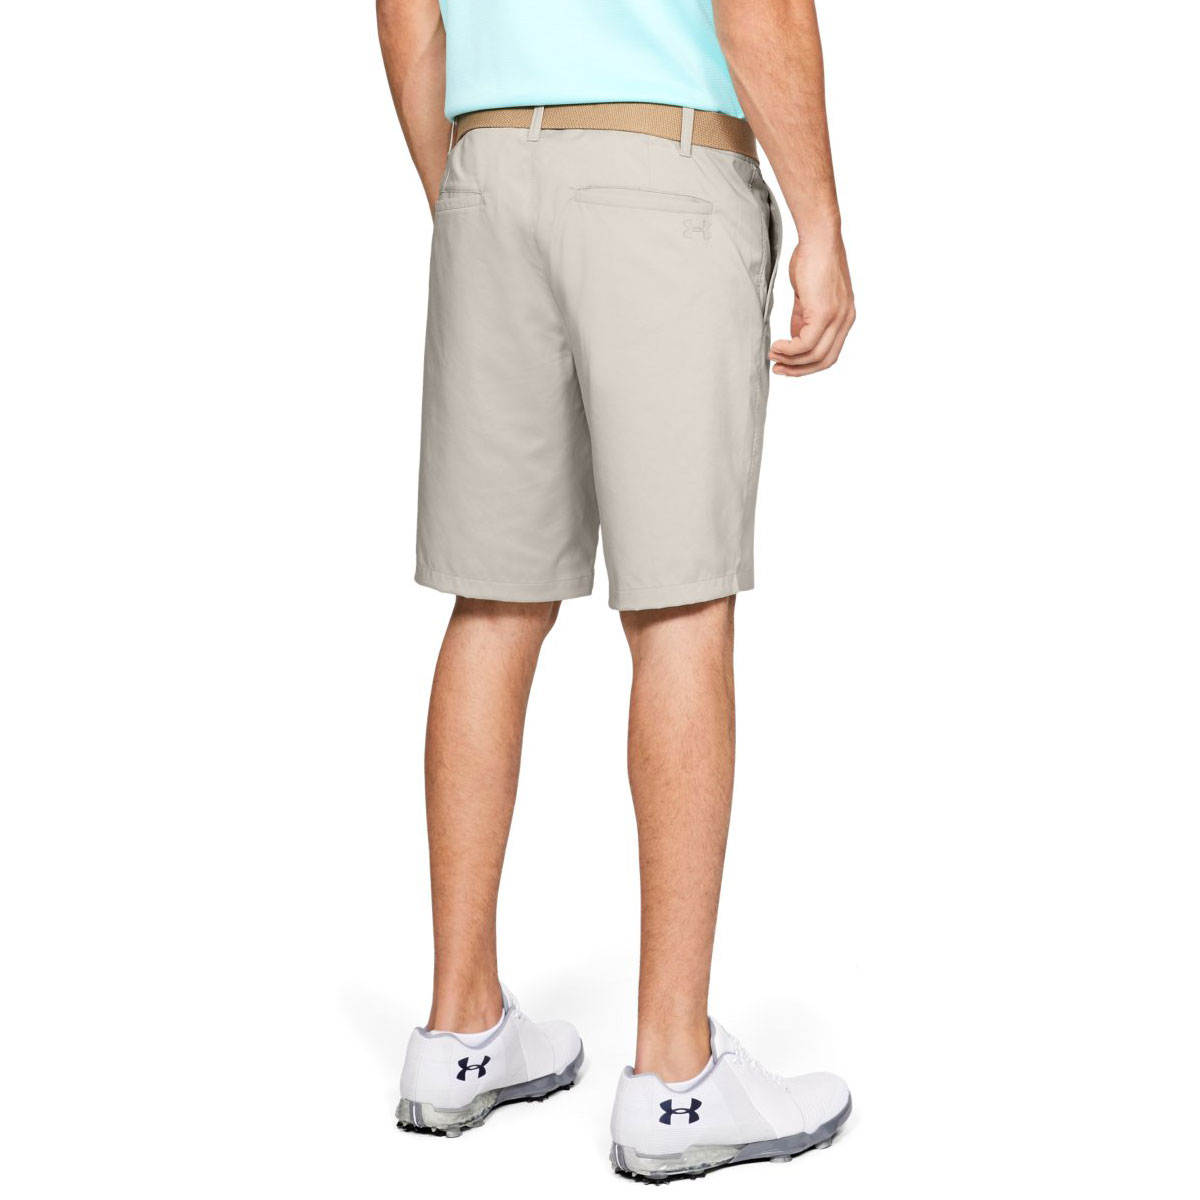 Under-Armour-Mens-EU-Tech-Stretch-Soft-Fitted-Golf-Shorts thumbnail 7